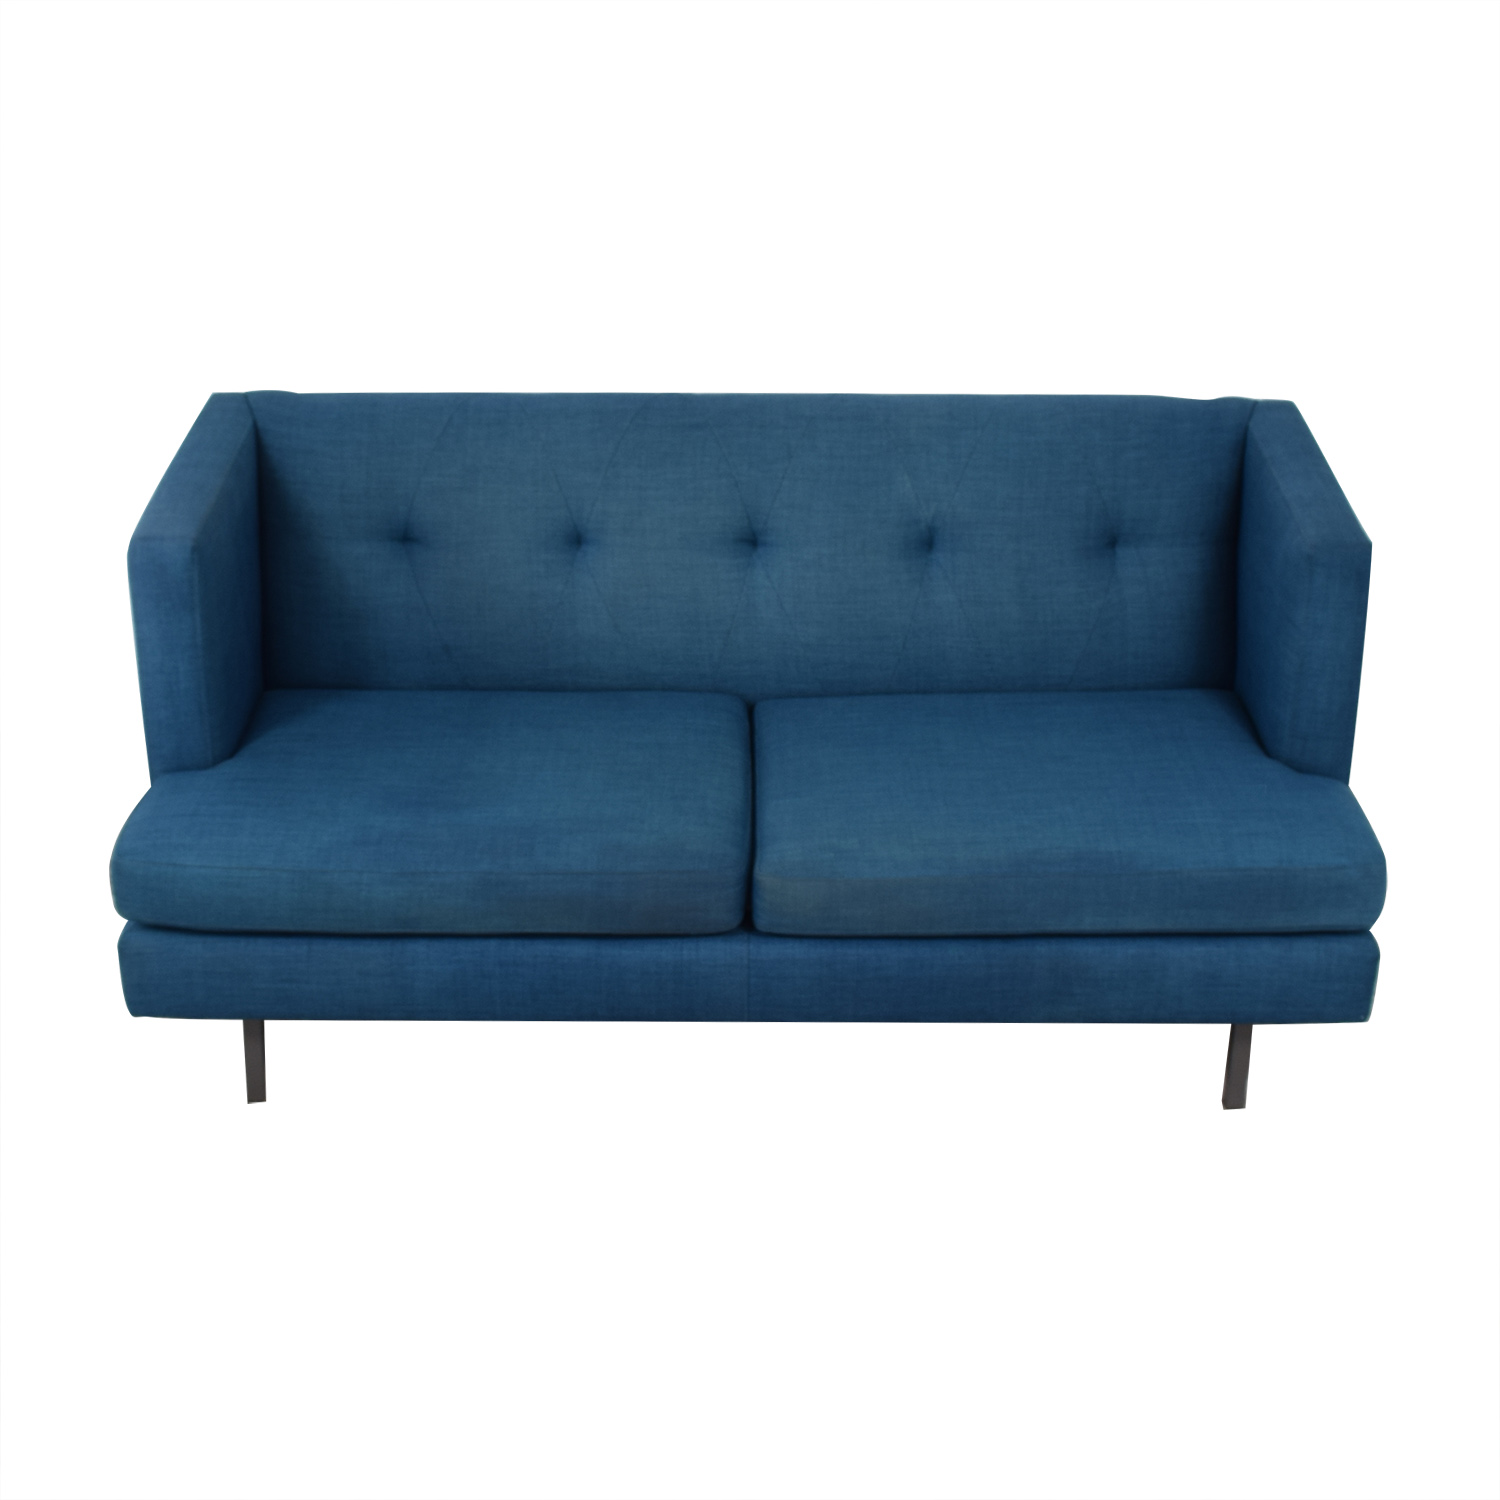 CB2 CB2 Apartment Sofa price